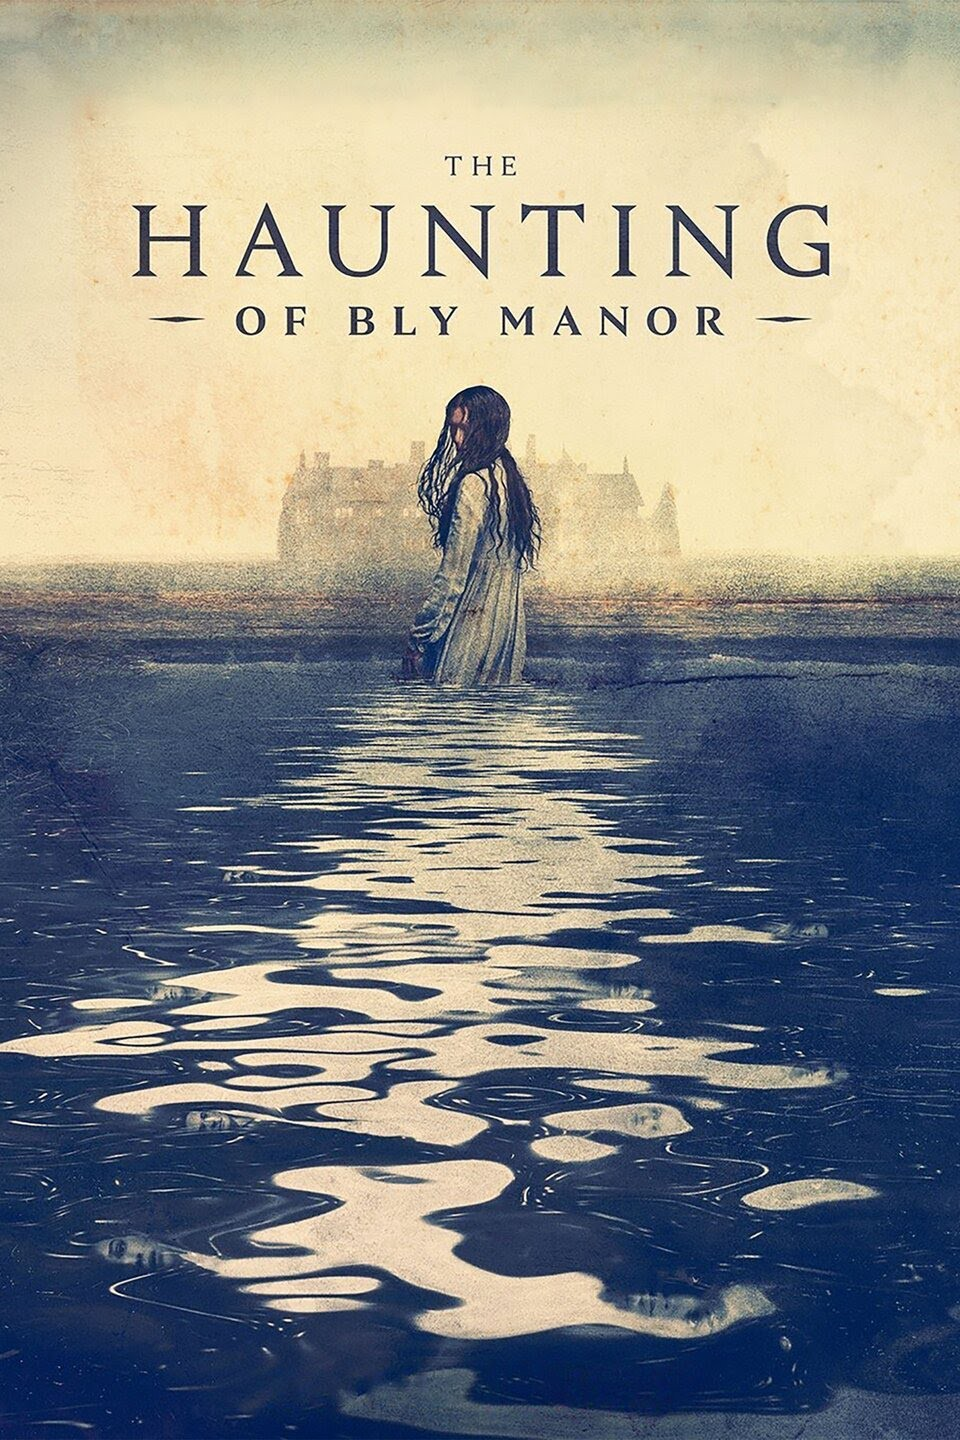 The Haunting of Bly Manor is Netflix's follow up to The Haunting of Hill House